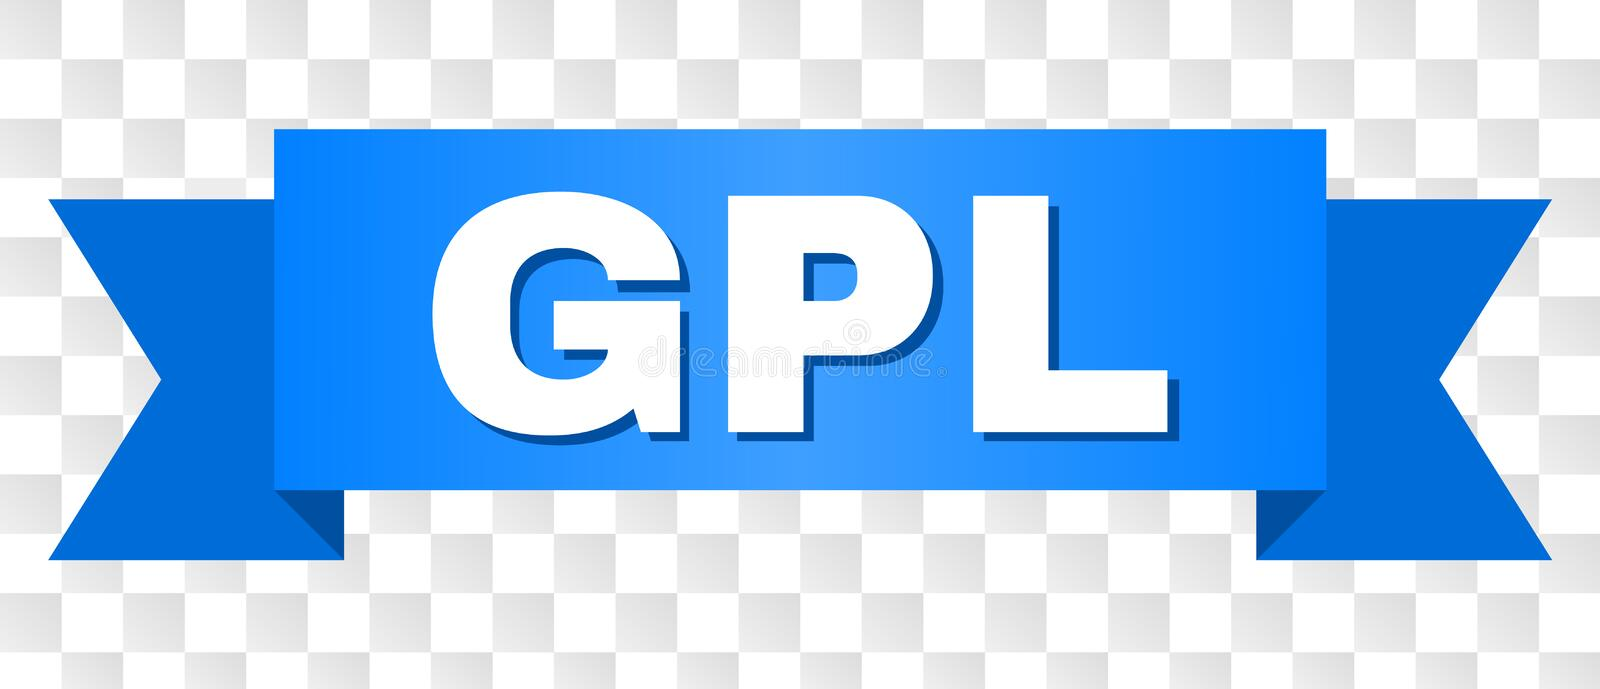 Blue Ribbon with GPL Text. GPL text on a ribbon. Designed with white caption and blue stripe. Vector banner with GPL tag on a transparent background stock illustration